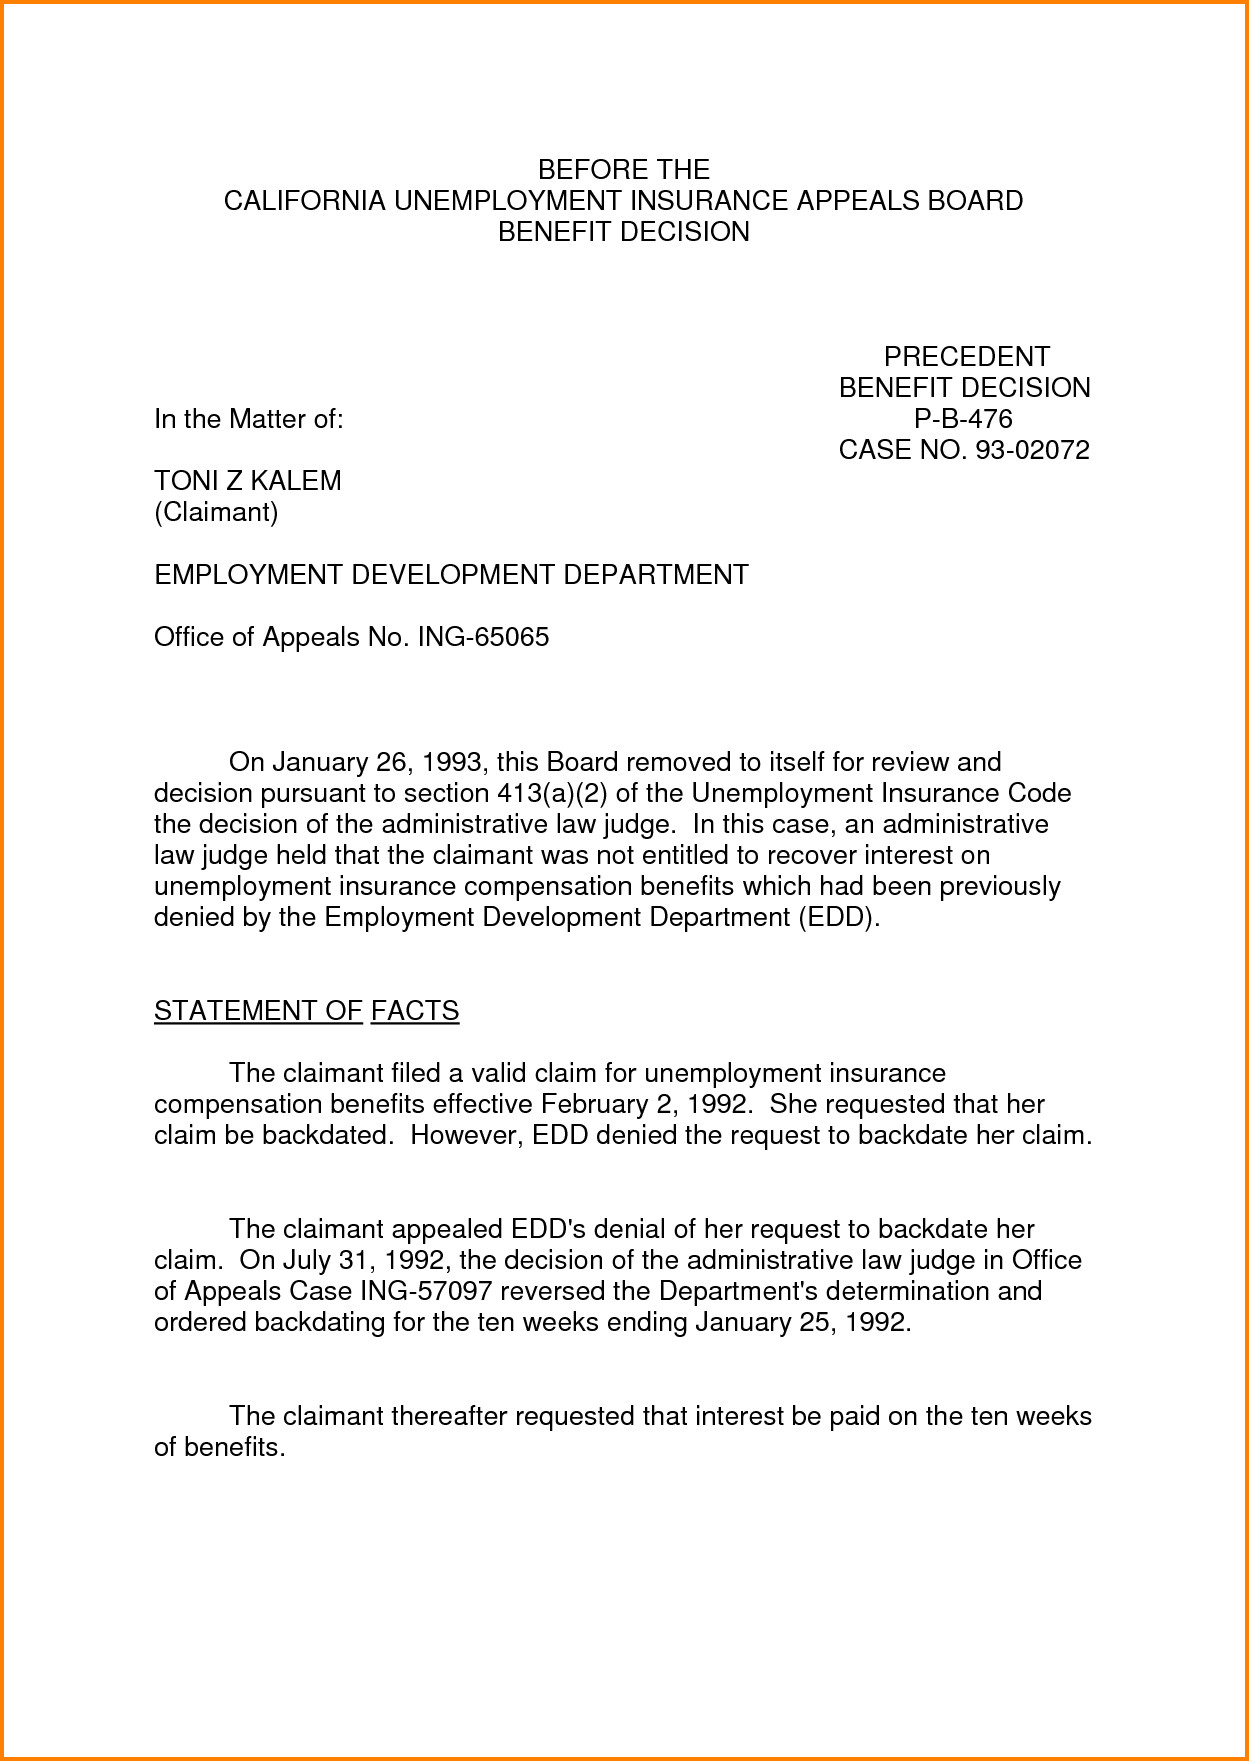 Sample Appeal Letter format 8 Sample Appeal Letter for Unemployment Denial